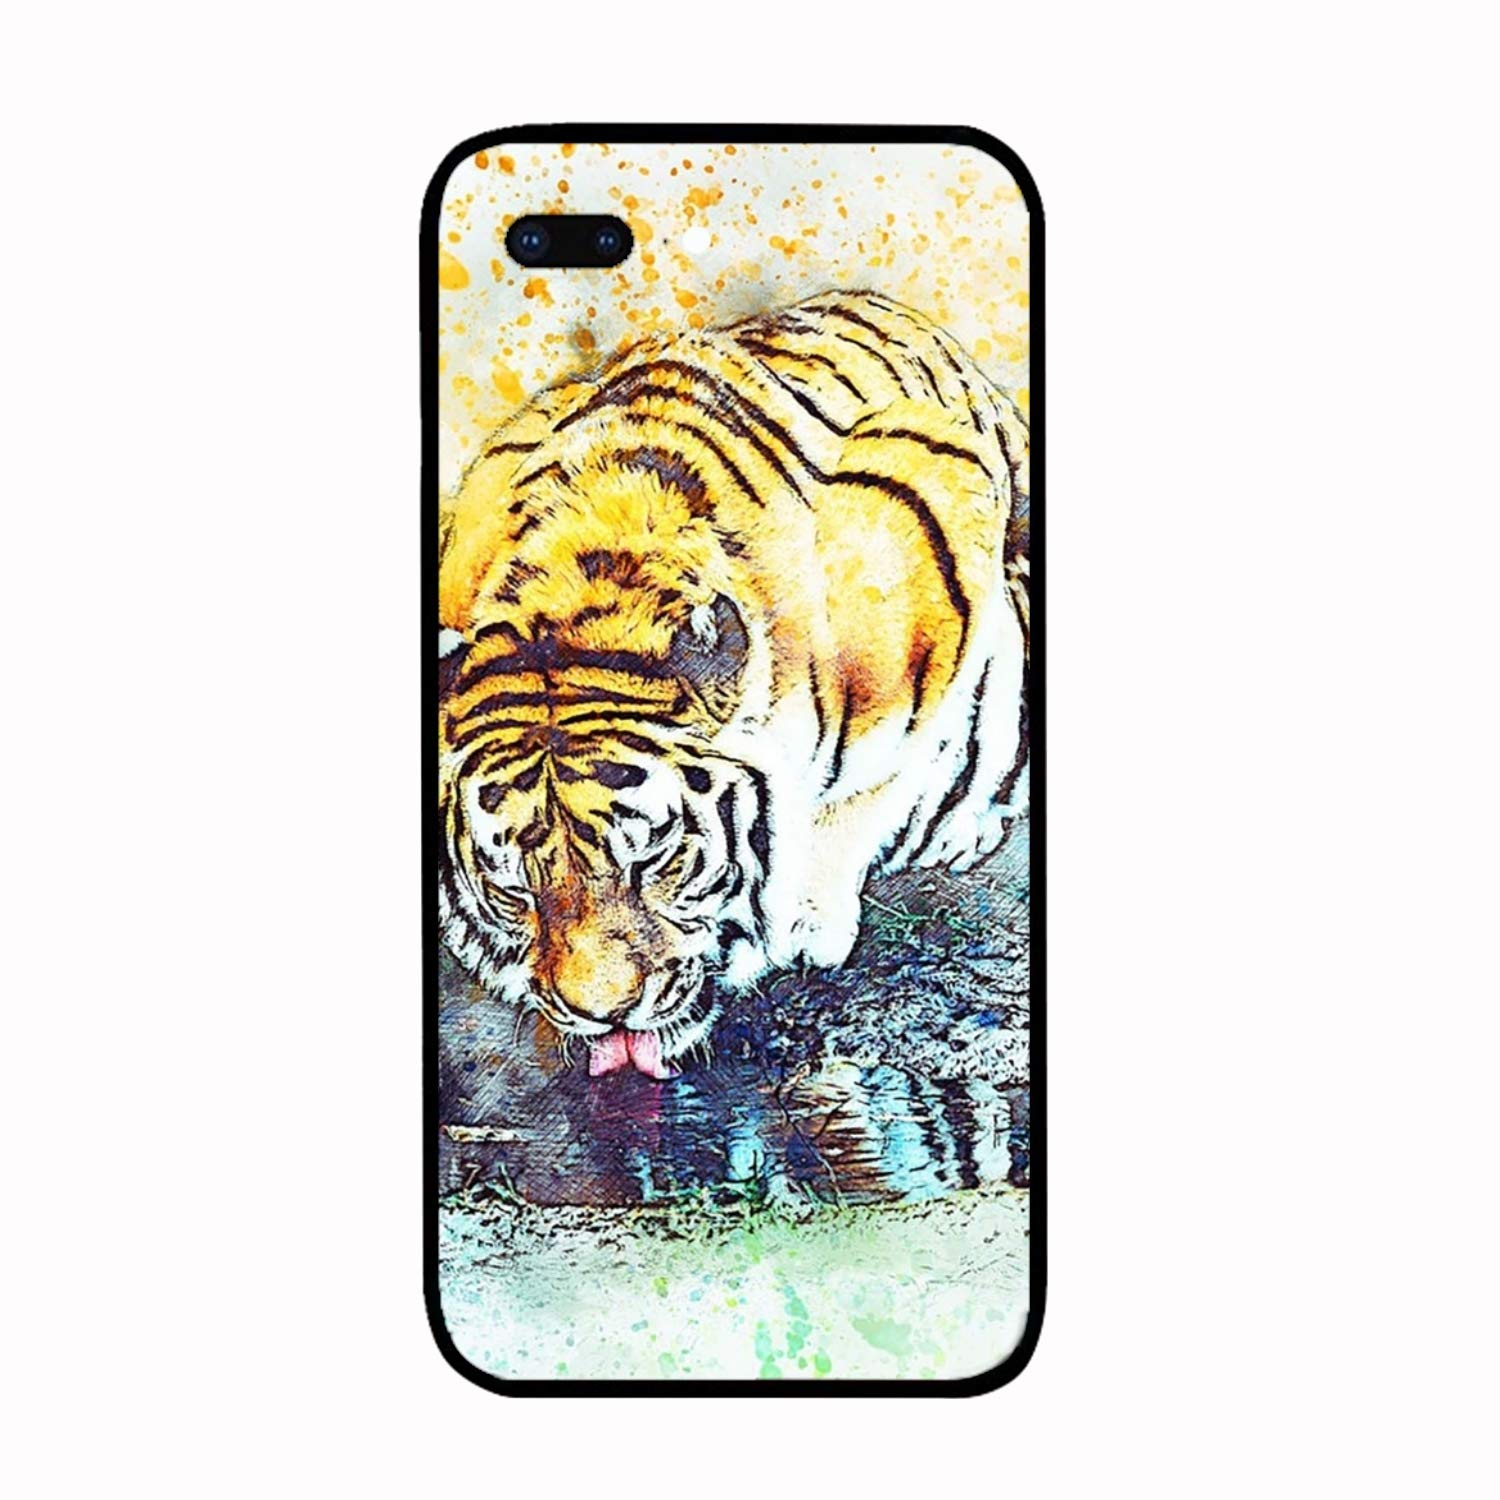 Amazon.com: iPhone Case for Girls, Tiger Head Aquarell ...